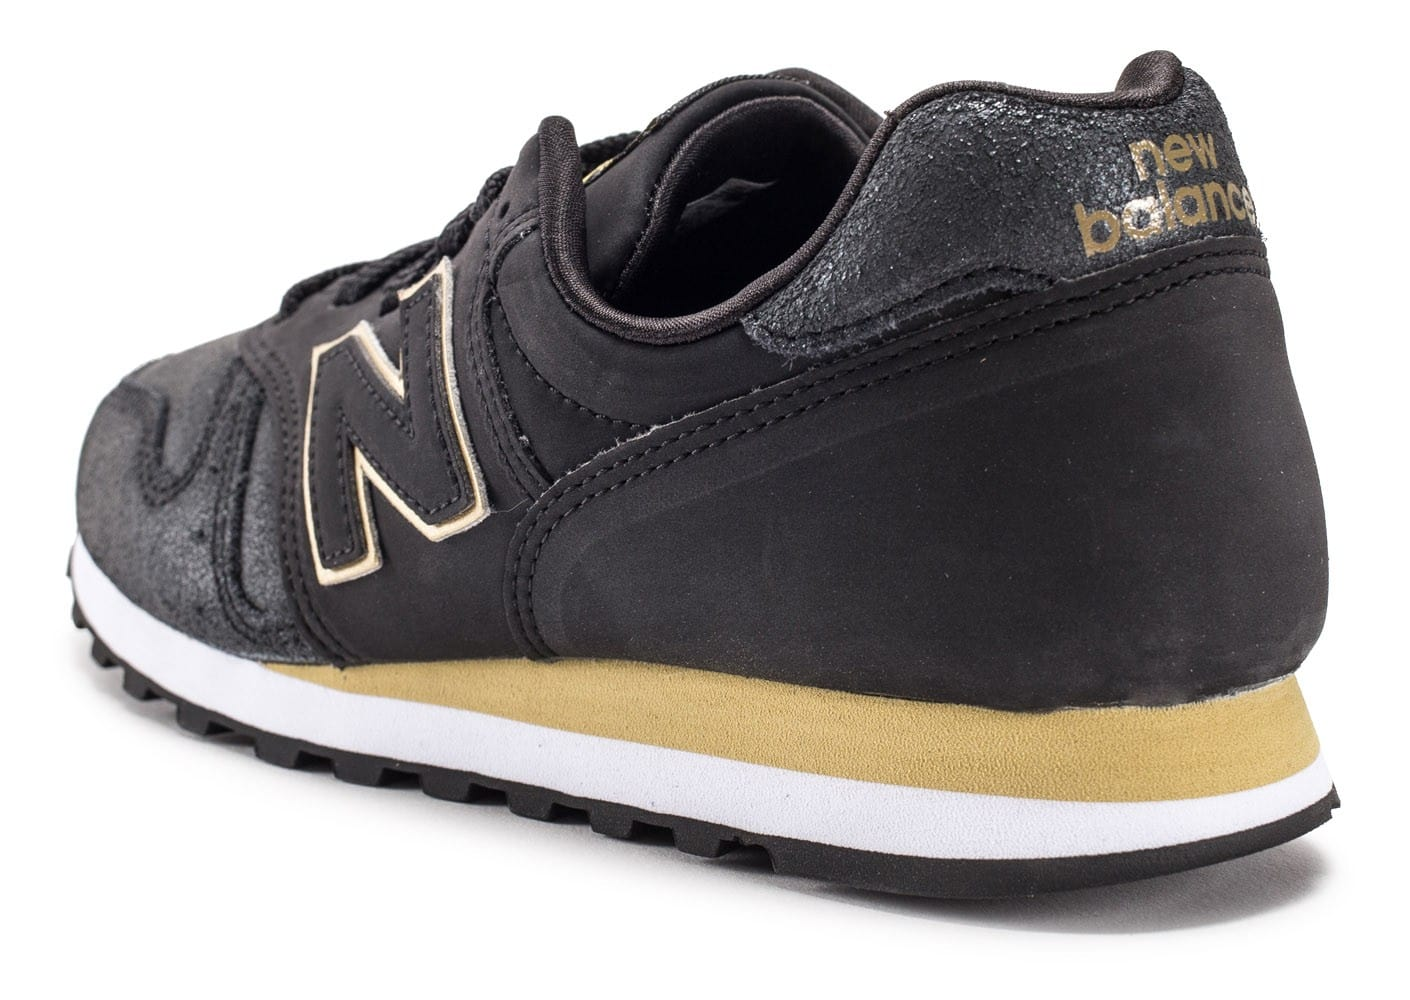 separation shoes a81cf d2321 4386-chaussures-new-balance-373-wl-373-ng-vue-arriere 1.jpg